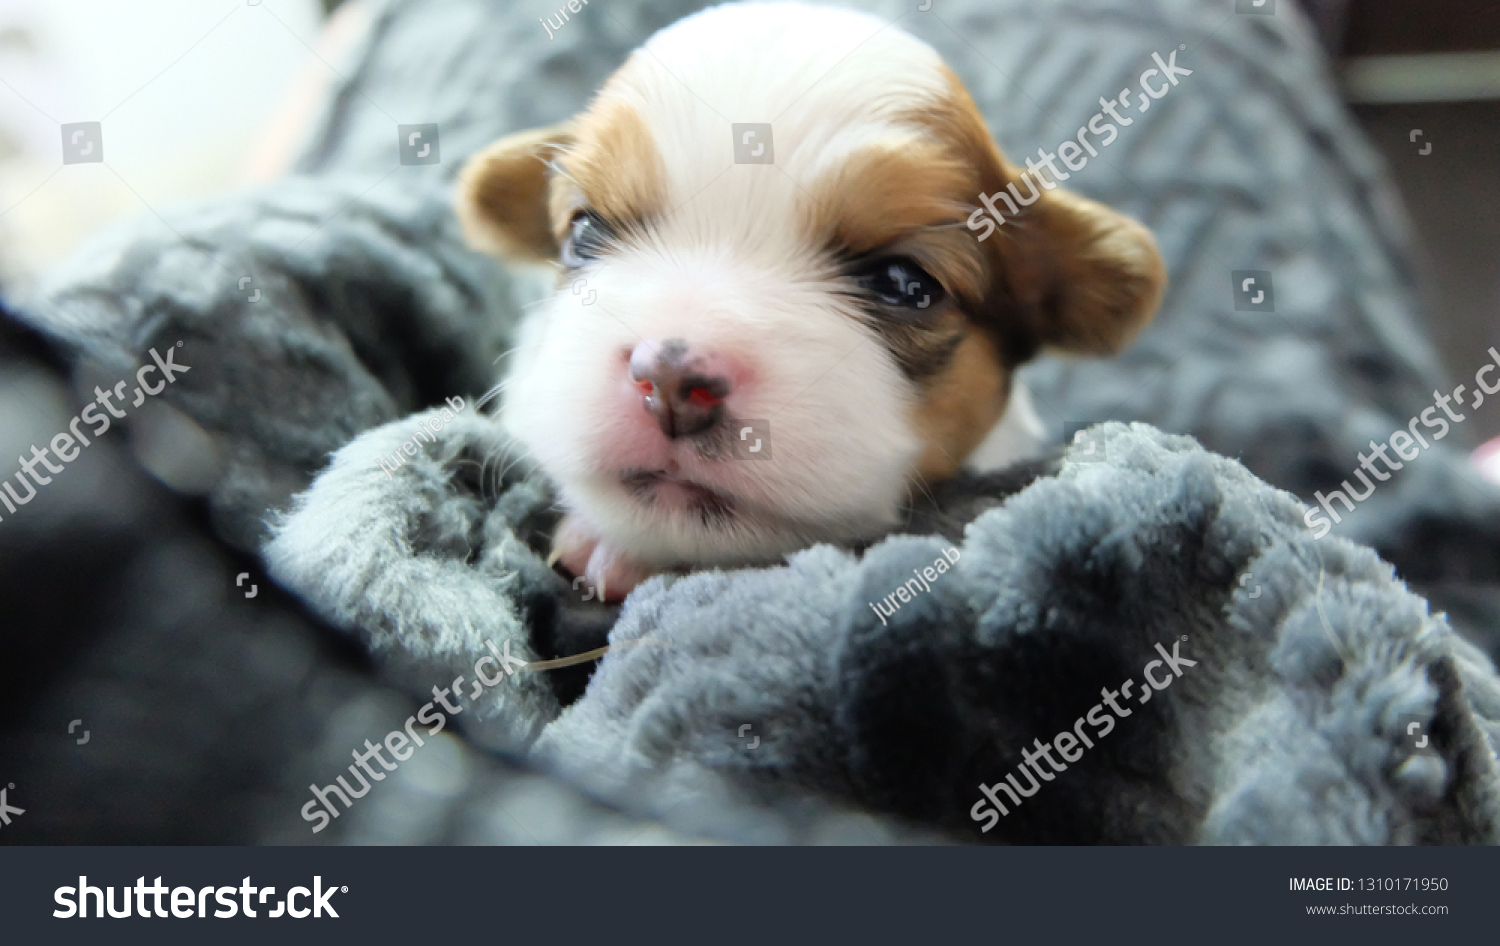 Chihuahua Puppy Grey Blanket Stock Photo Edit Now 1310171950